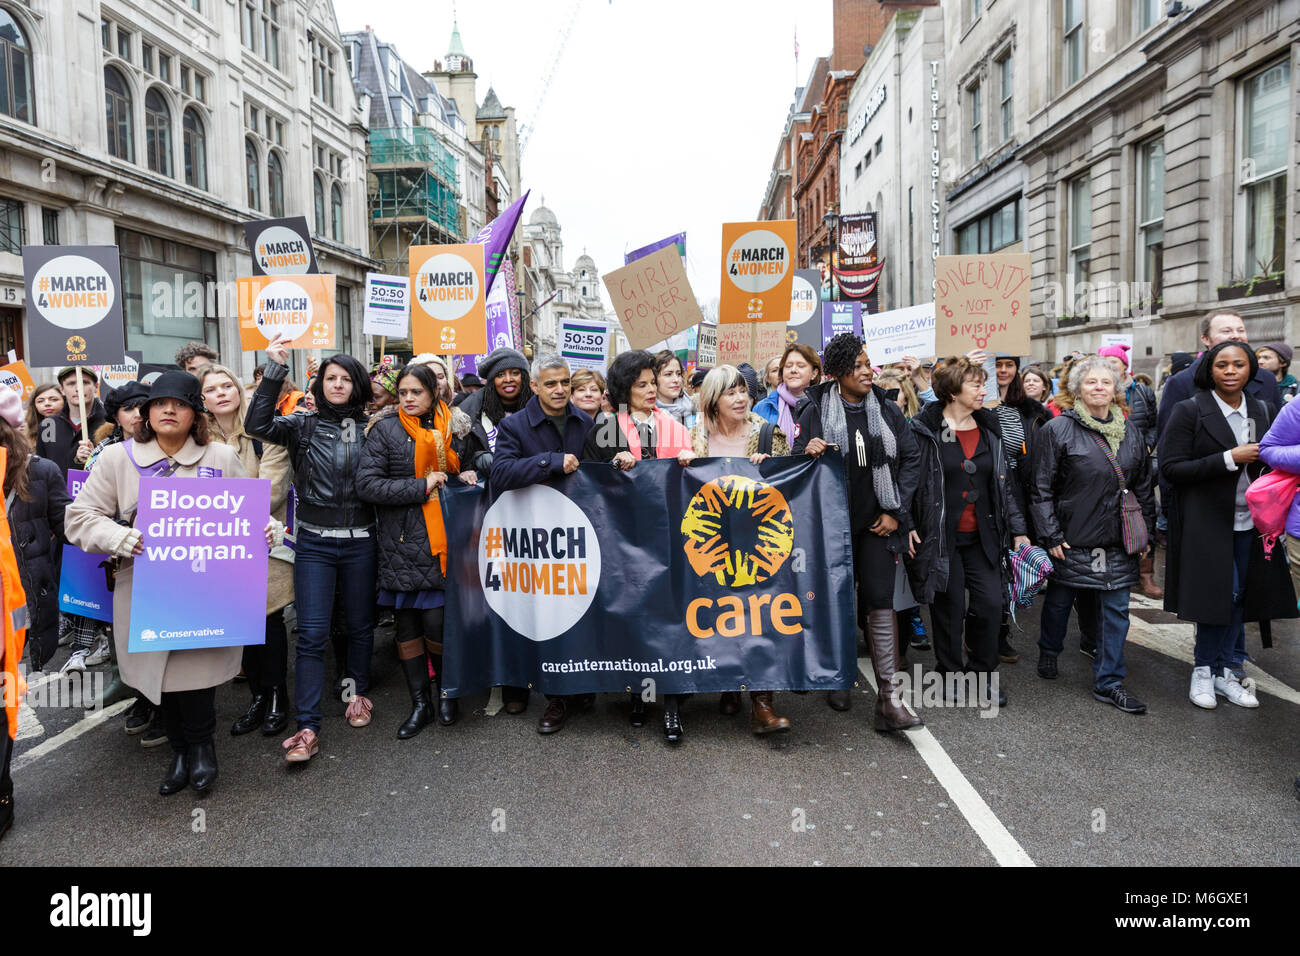 Westminster, London, 4th March 2018. Mayor Sadiq Khan leads the march with Bianca Jagger, Sandi Tonsvik, and others. - Stock Image